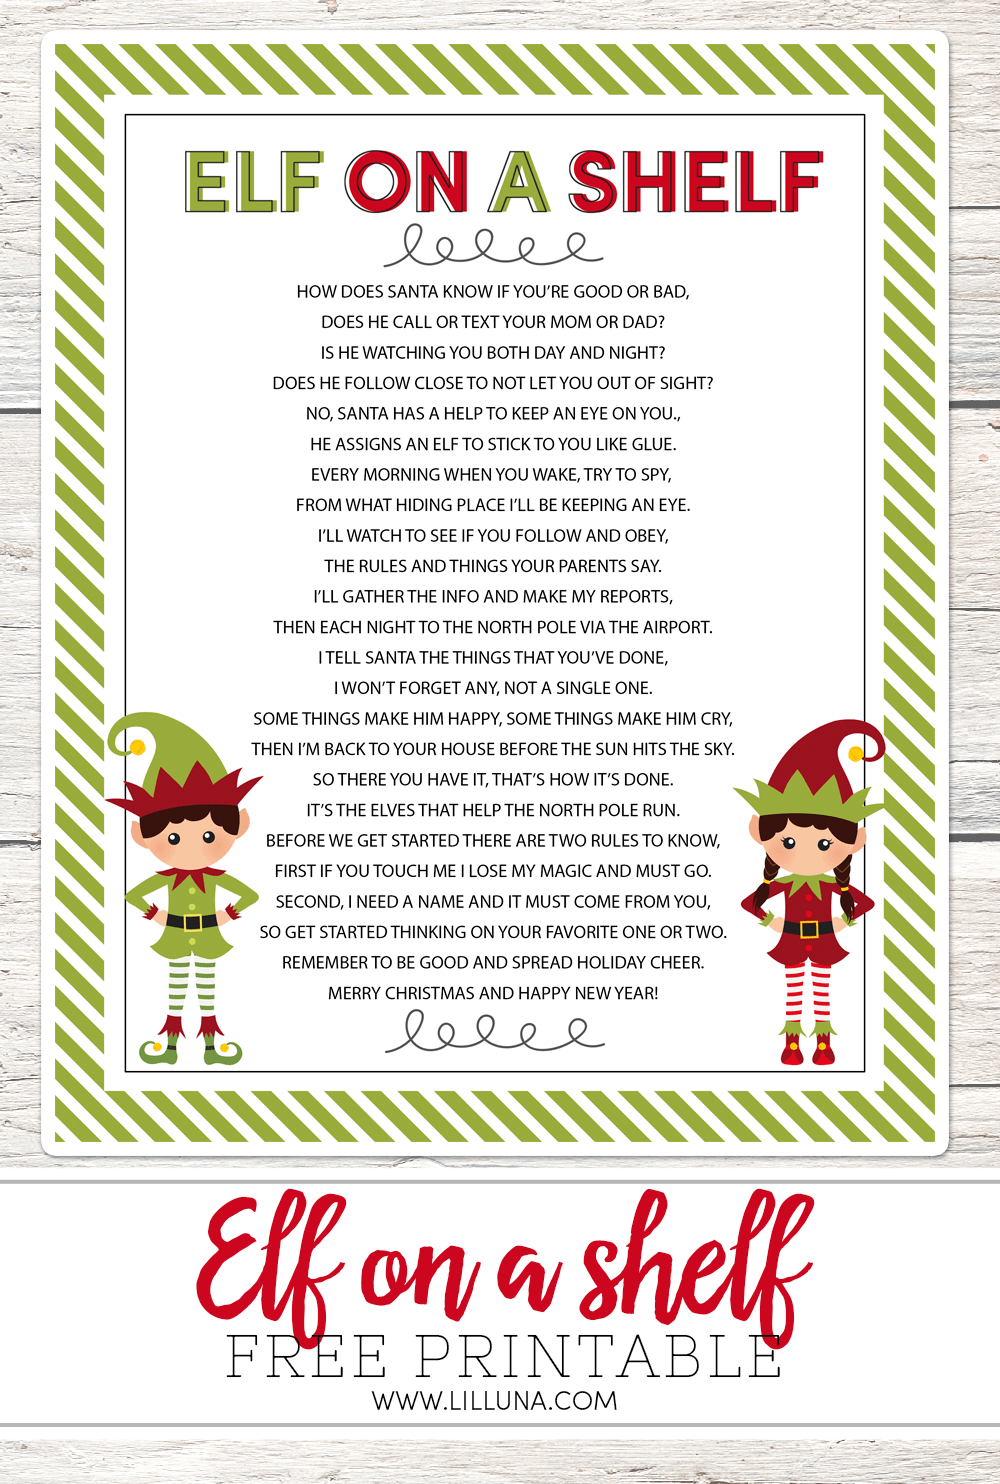 FREE Elf on a Shelf printable poem - perfect to use this holiday season!!